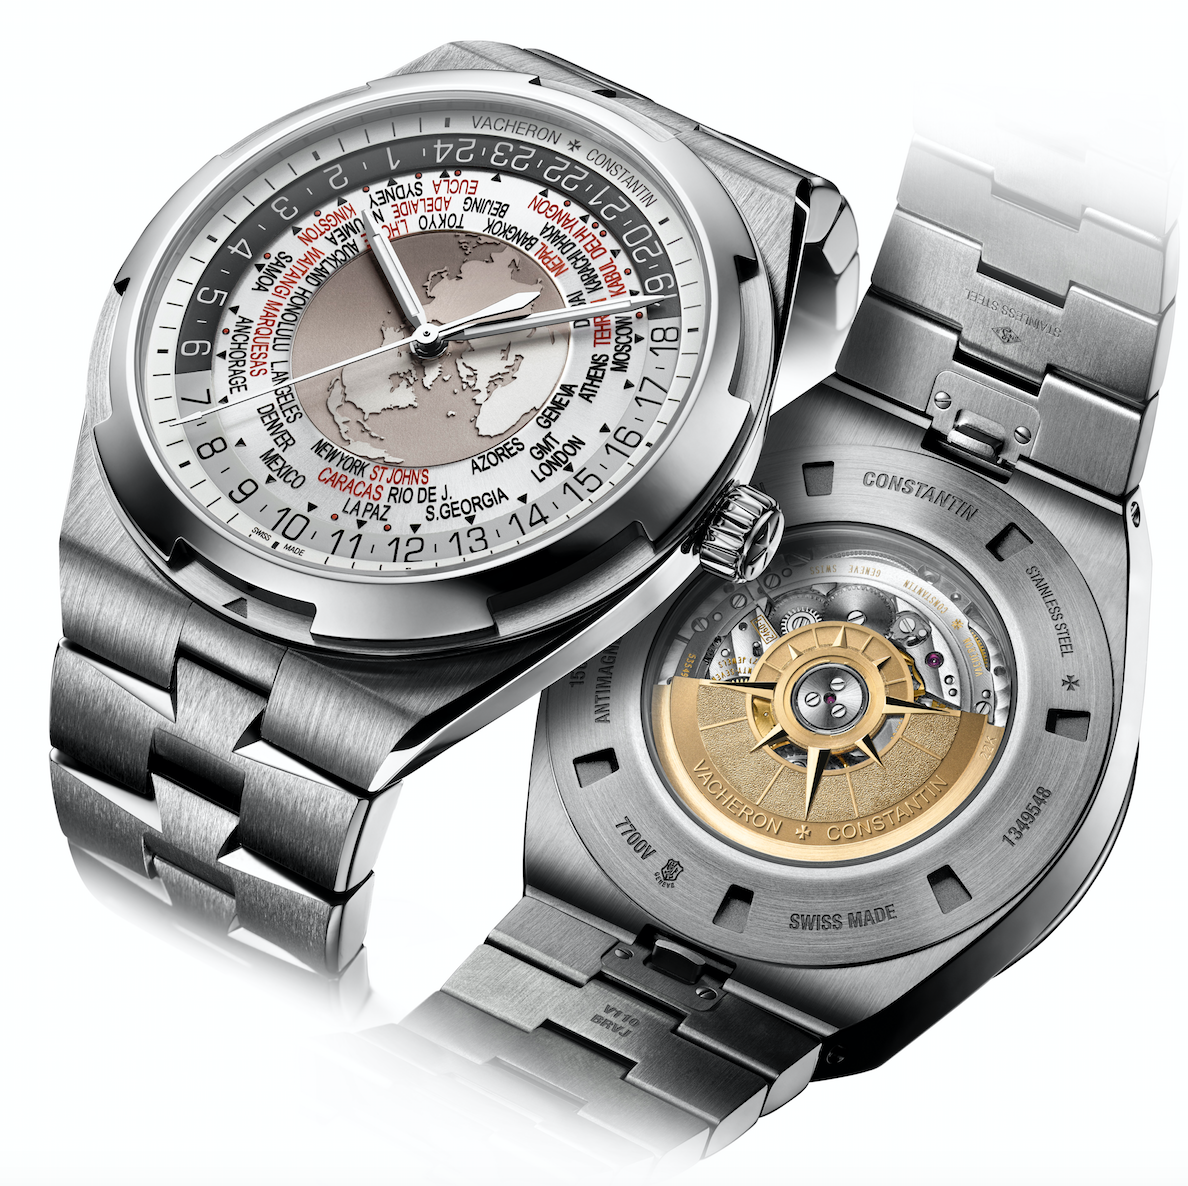 VacheronConstantin-Overseas-World-Time-1-2016